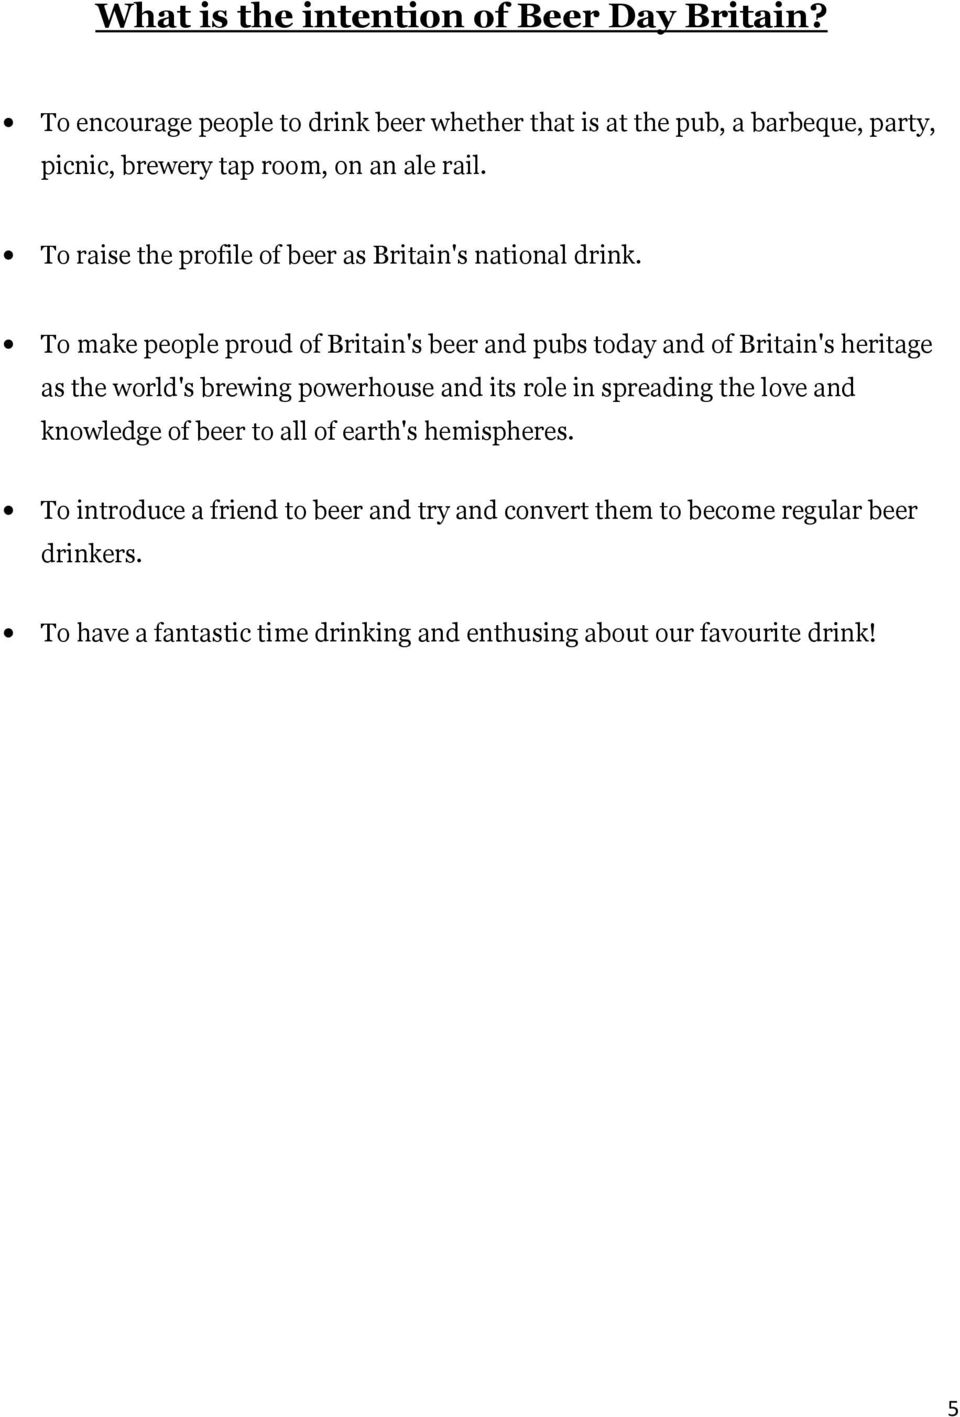 To raise the profile of beer as Britain's national drink.